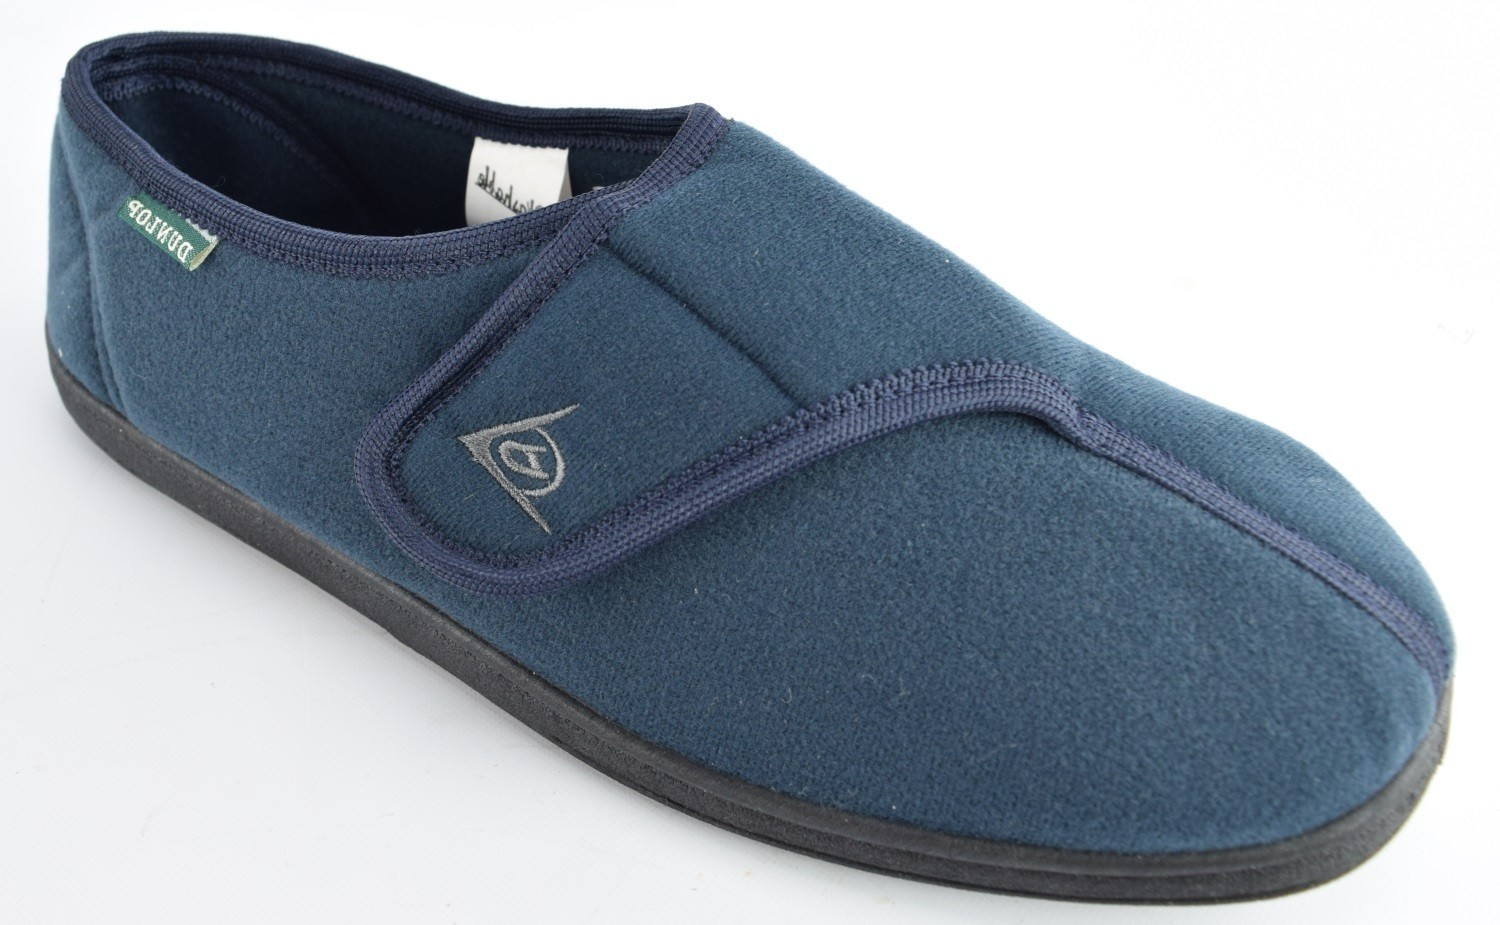 Gents Slippers - Arthur